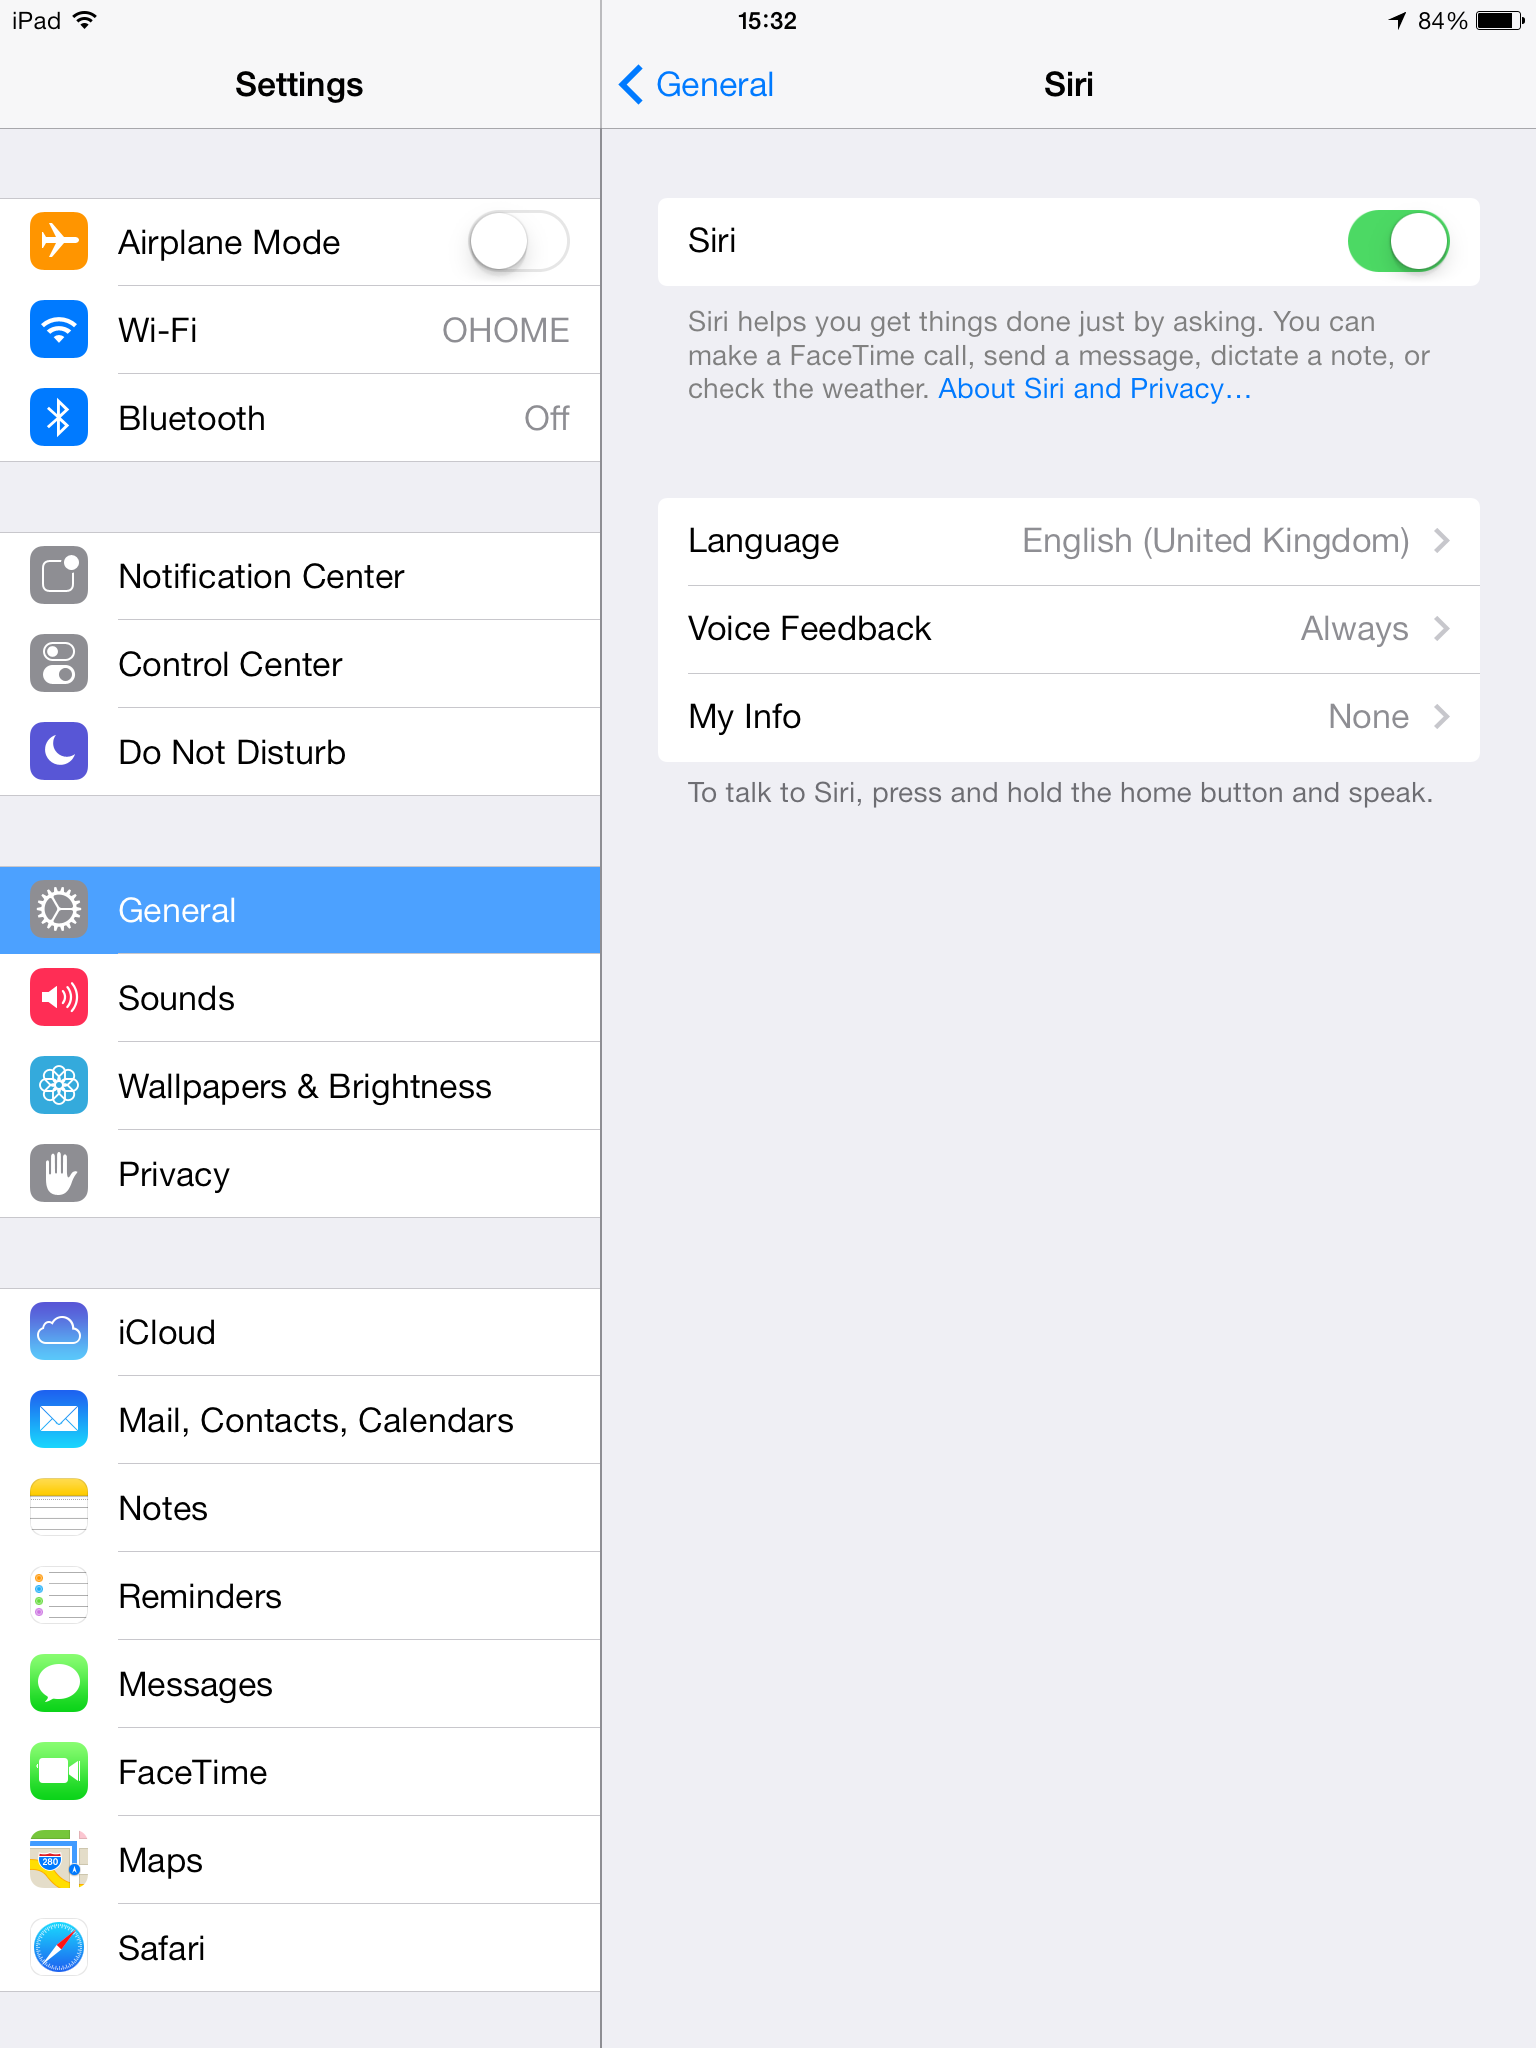 iOS 7.0.4 (Siri language settings, iPad mini UK 001)